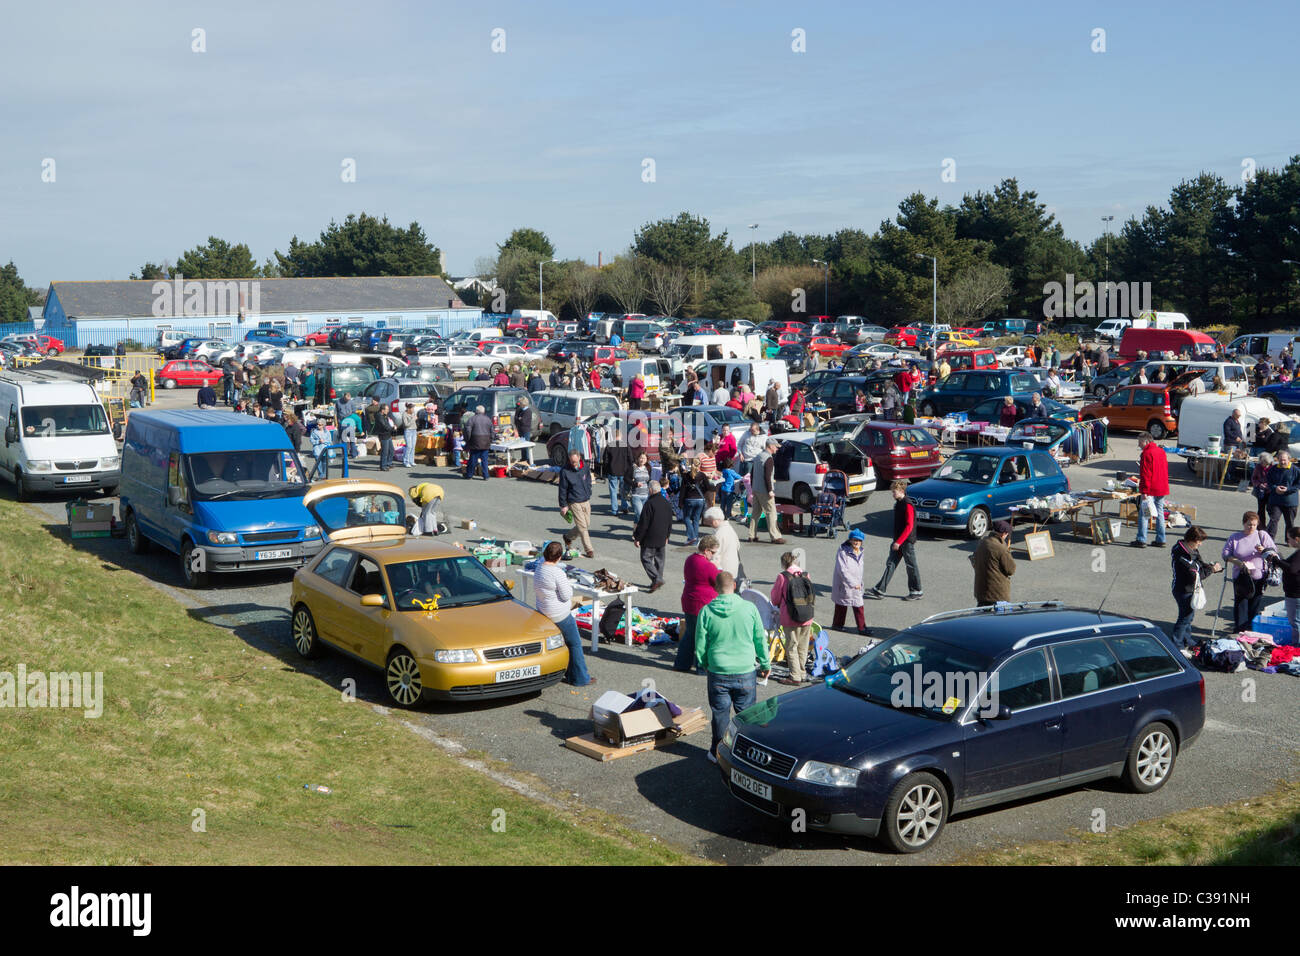 A car boot sale at the carn brea leisure centre car park in pool near redruth